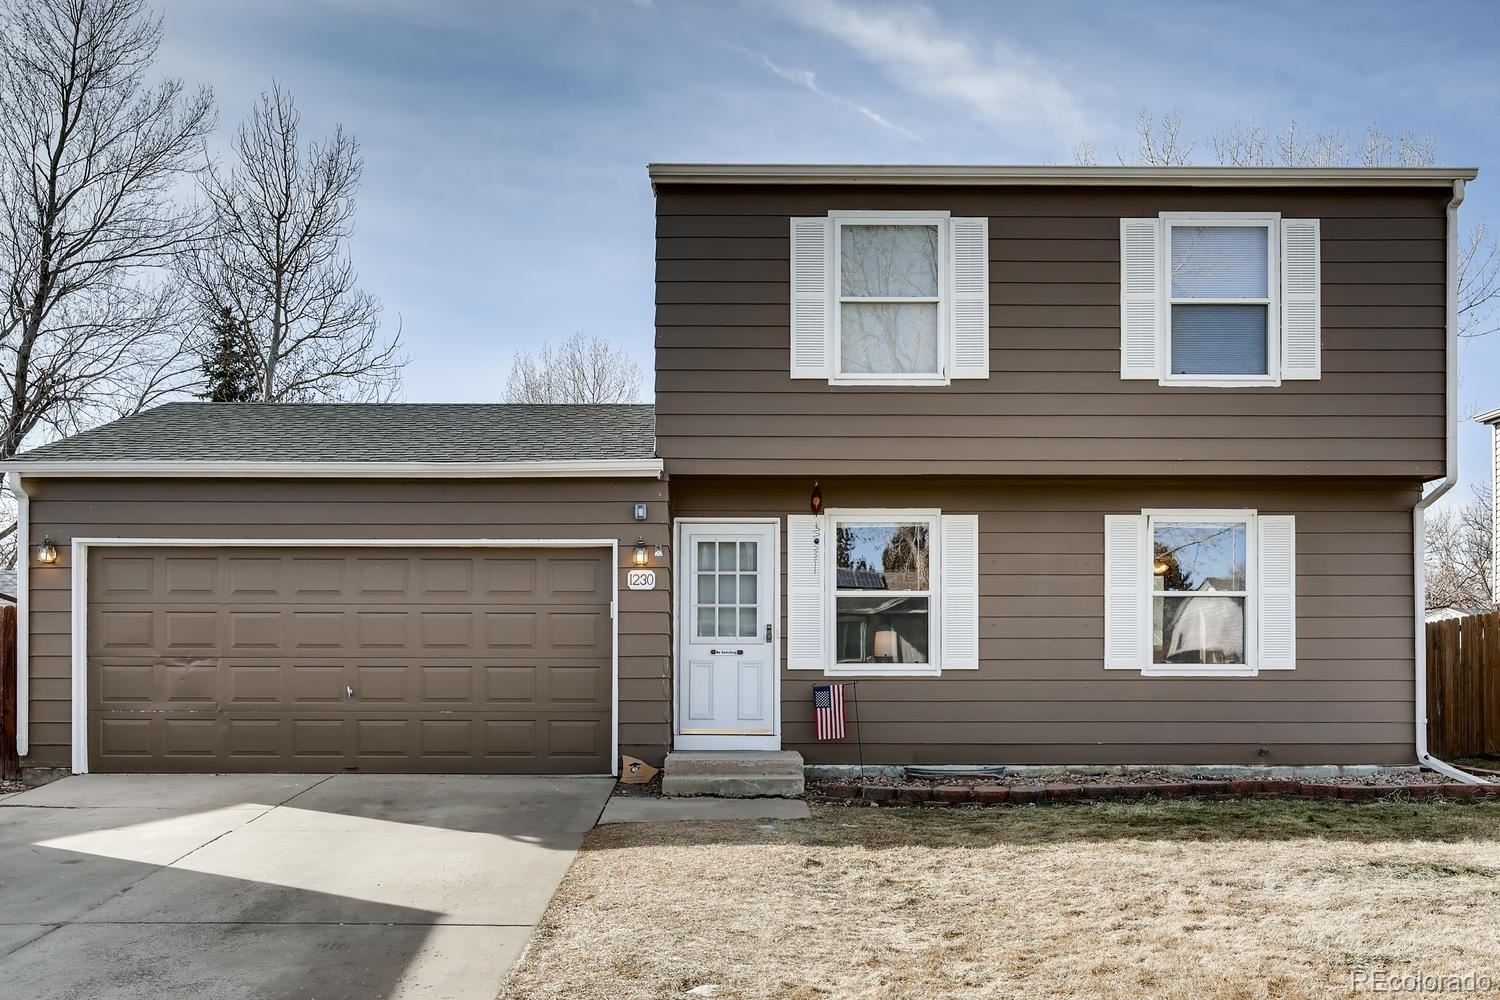 1230 W 135th Drive, Westminster, CO 80234 - #: 2354298